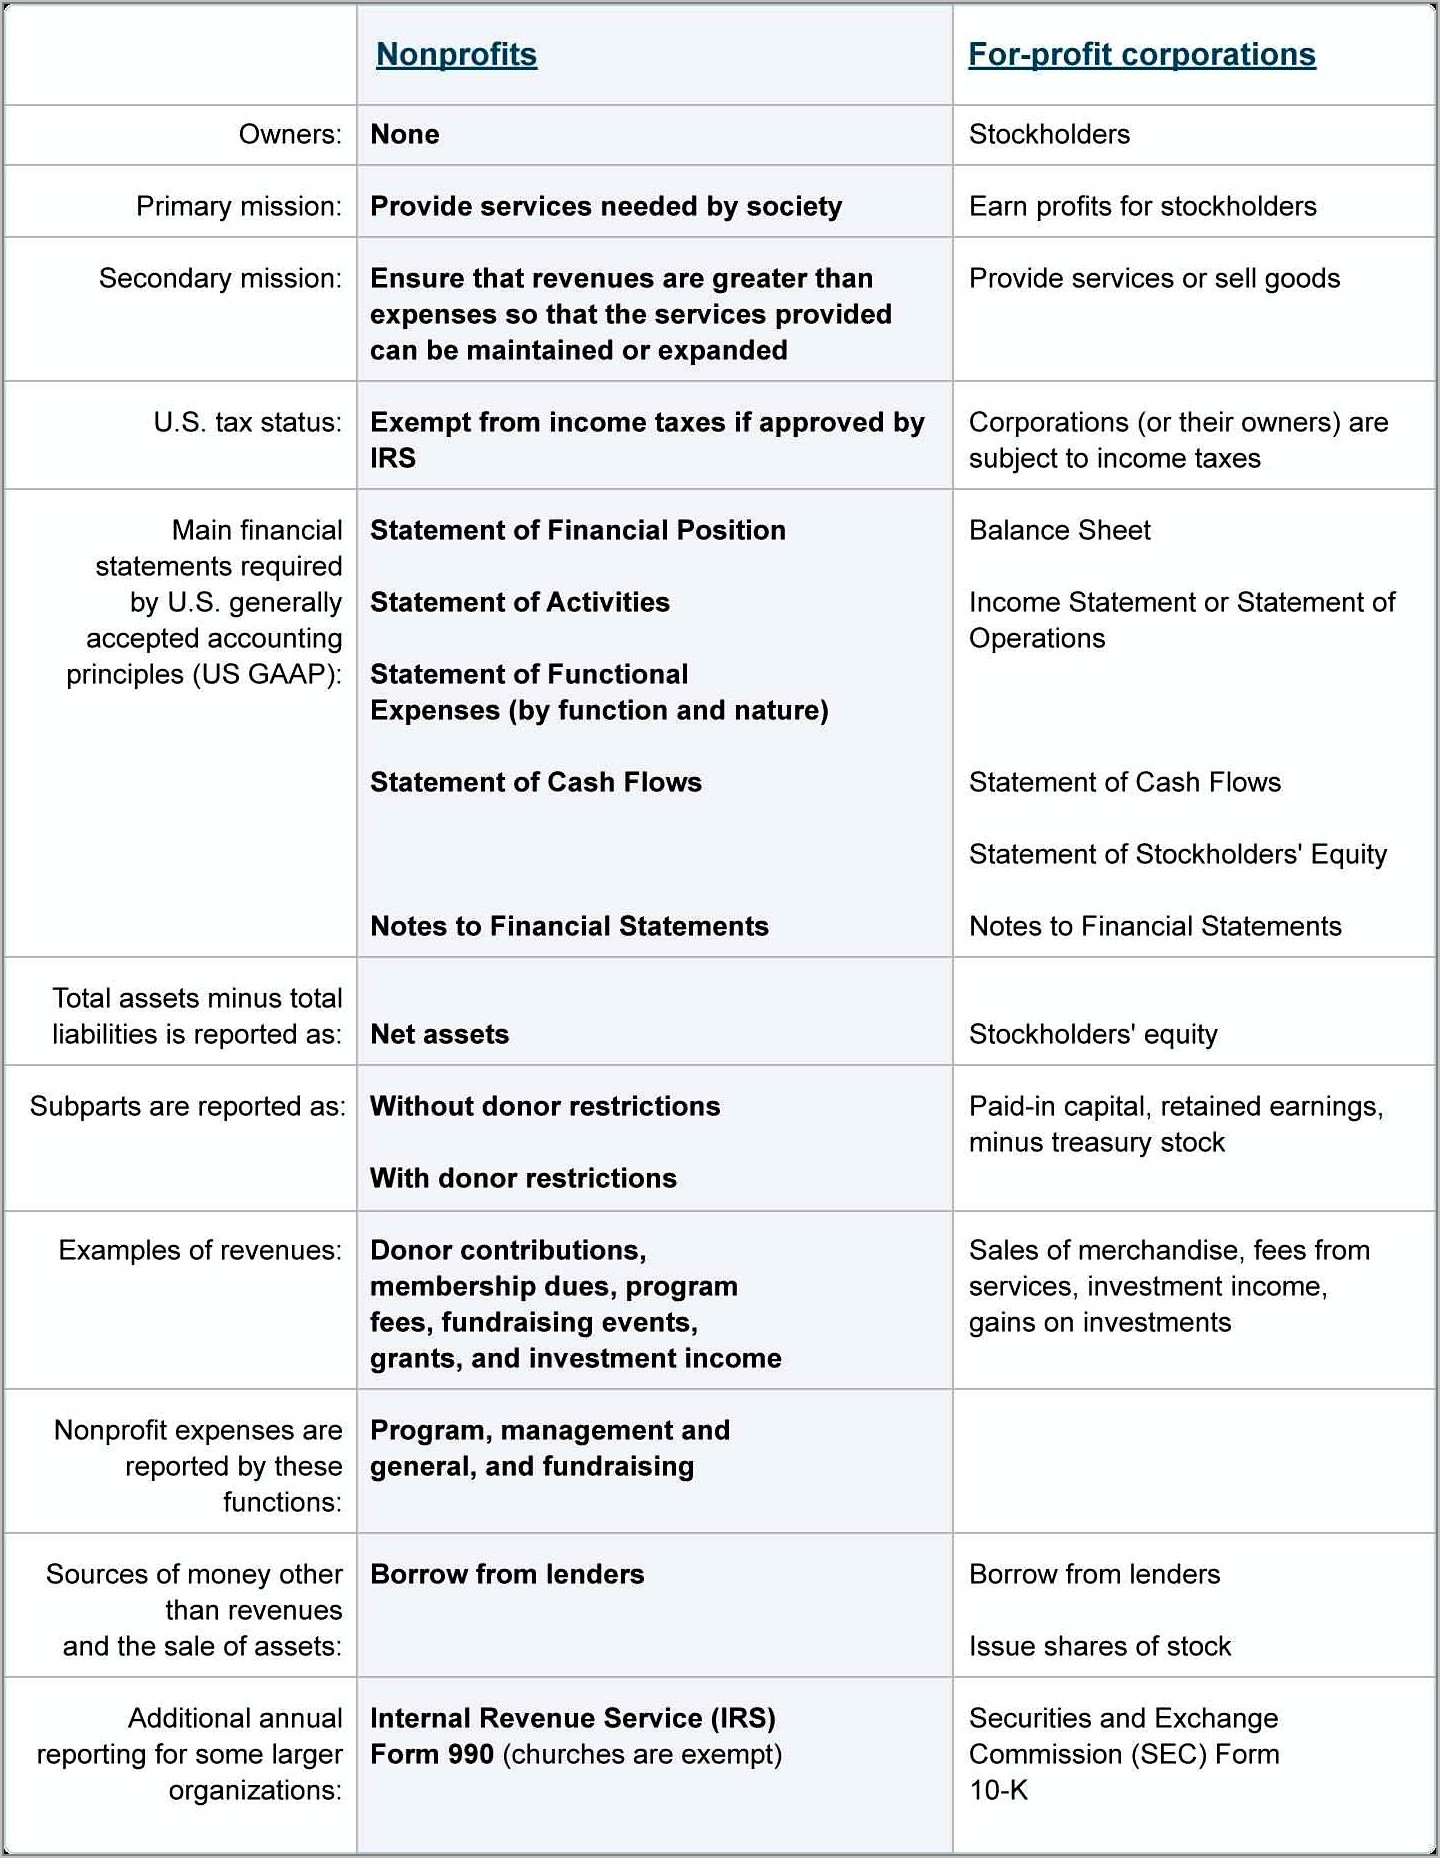 Sample Financial Statement For Nonprofit Organizations